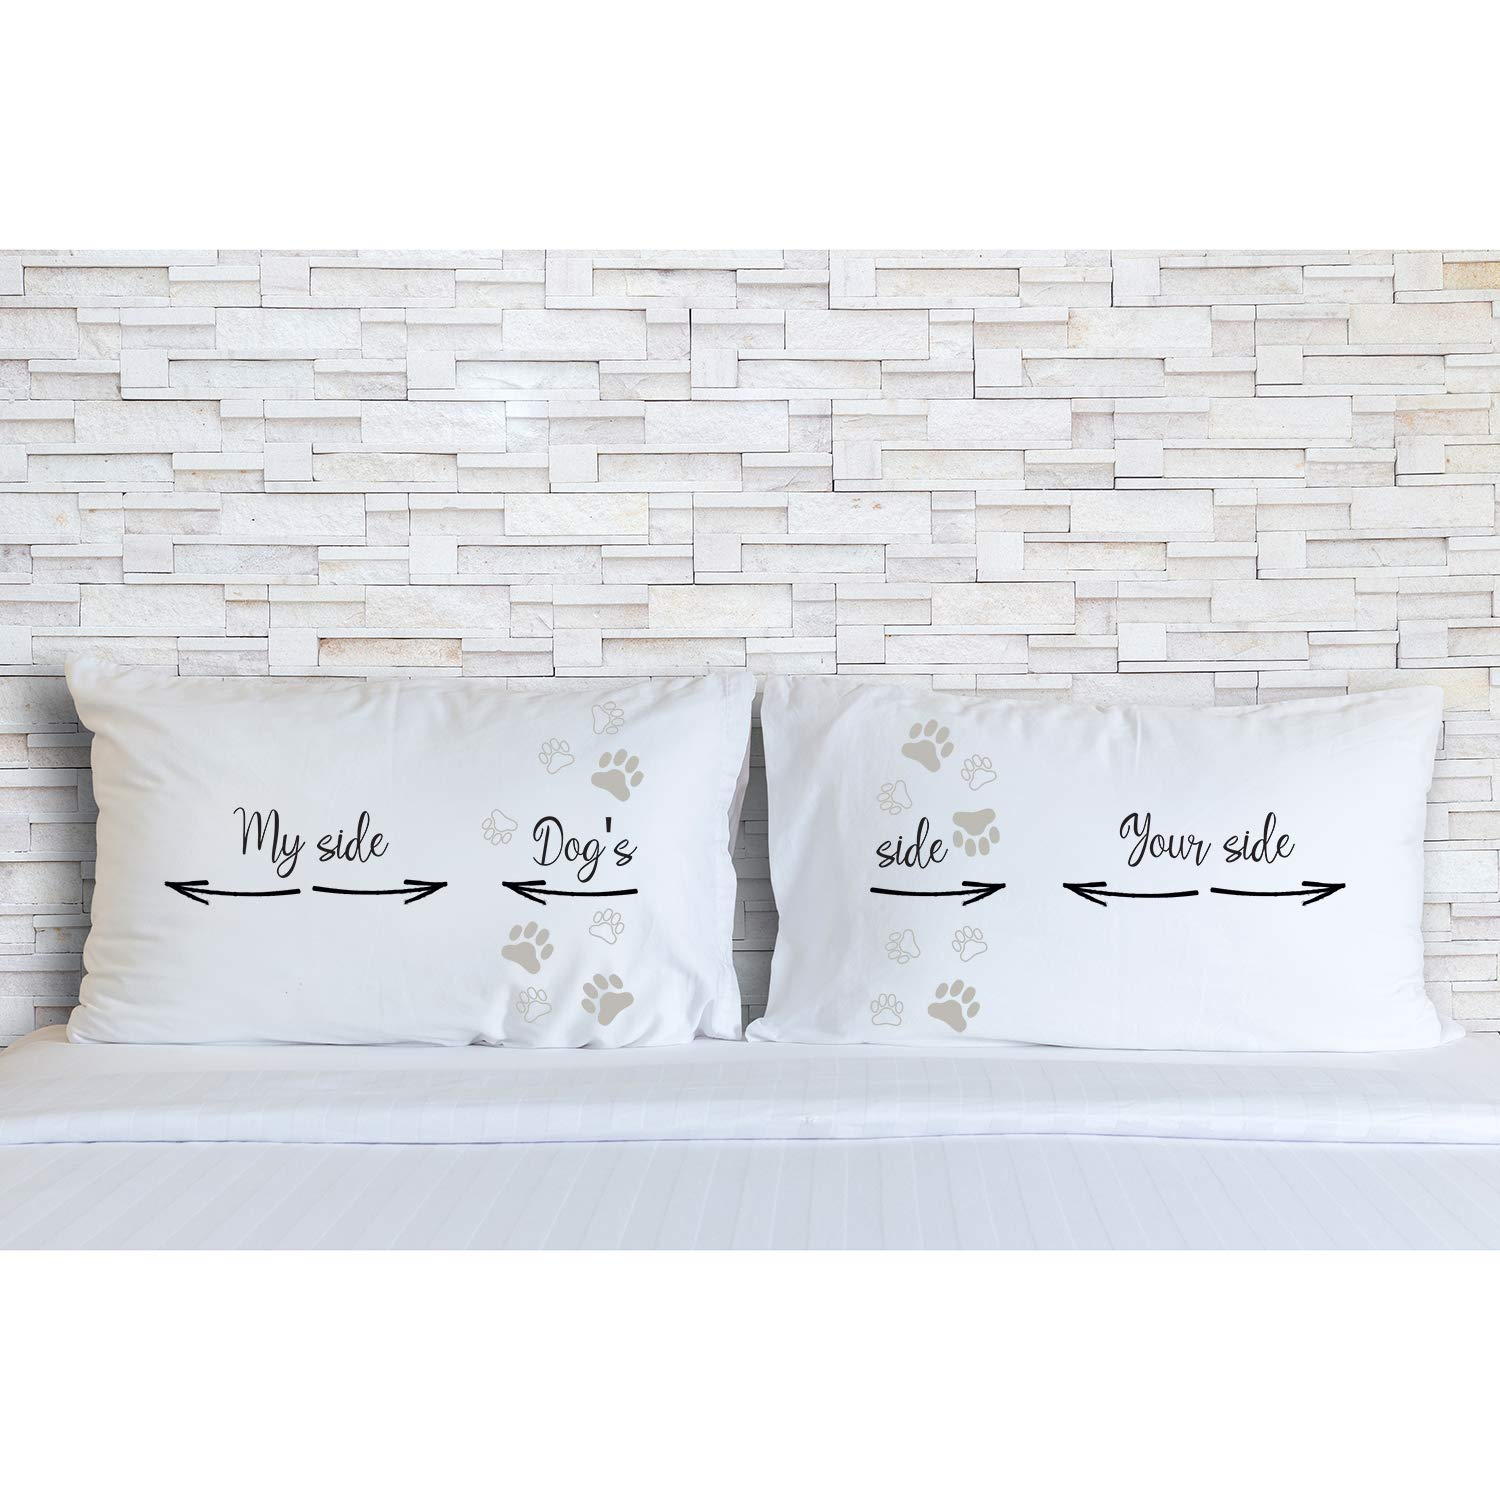 Valentines Day His and Hers Birthday Rubies /& Ribbons Dogs Side My Side Your Side Pet Lovers Matching Pillowcases for Couples Set of 2 Pillow Covers